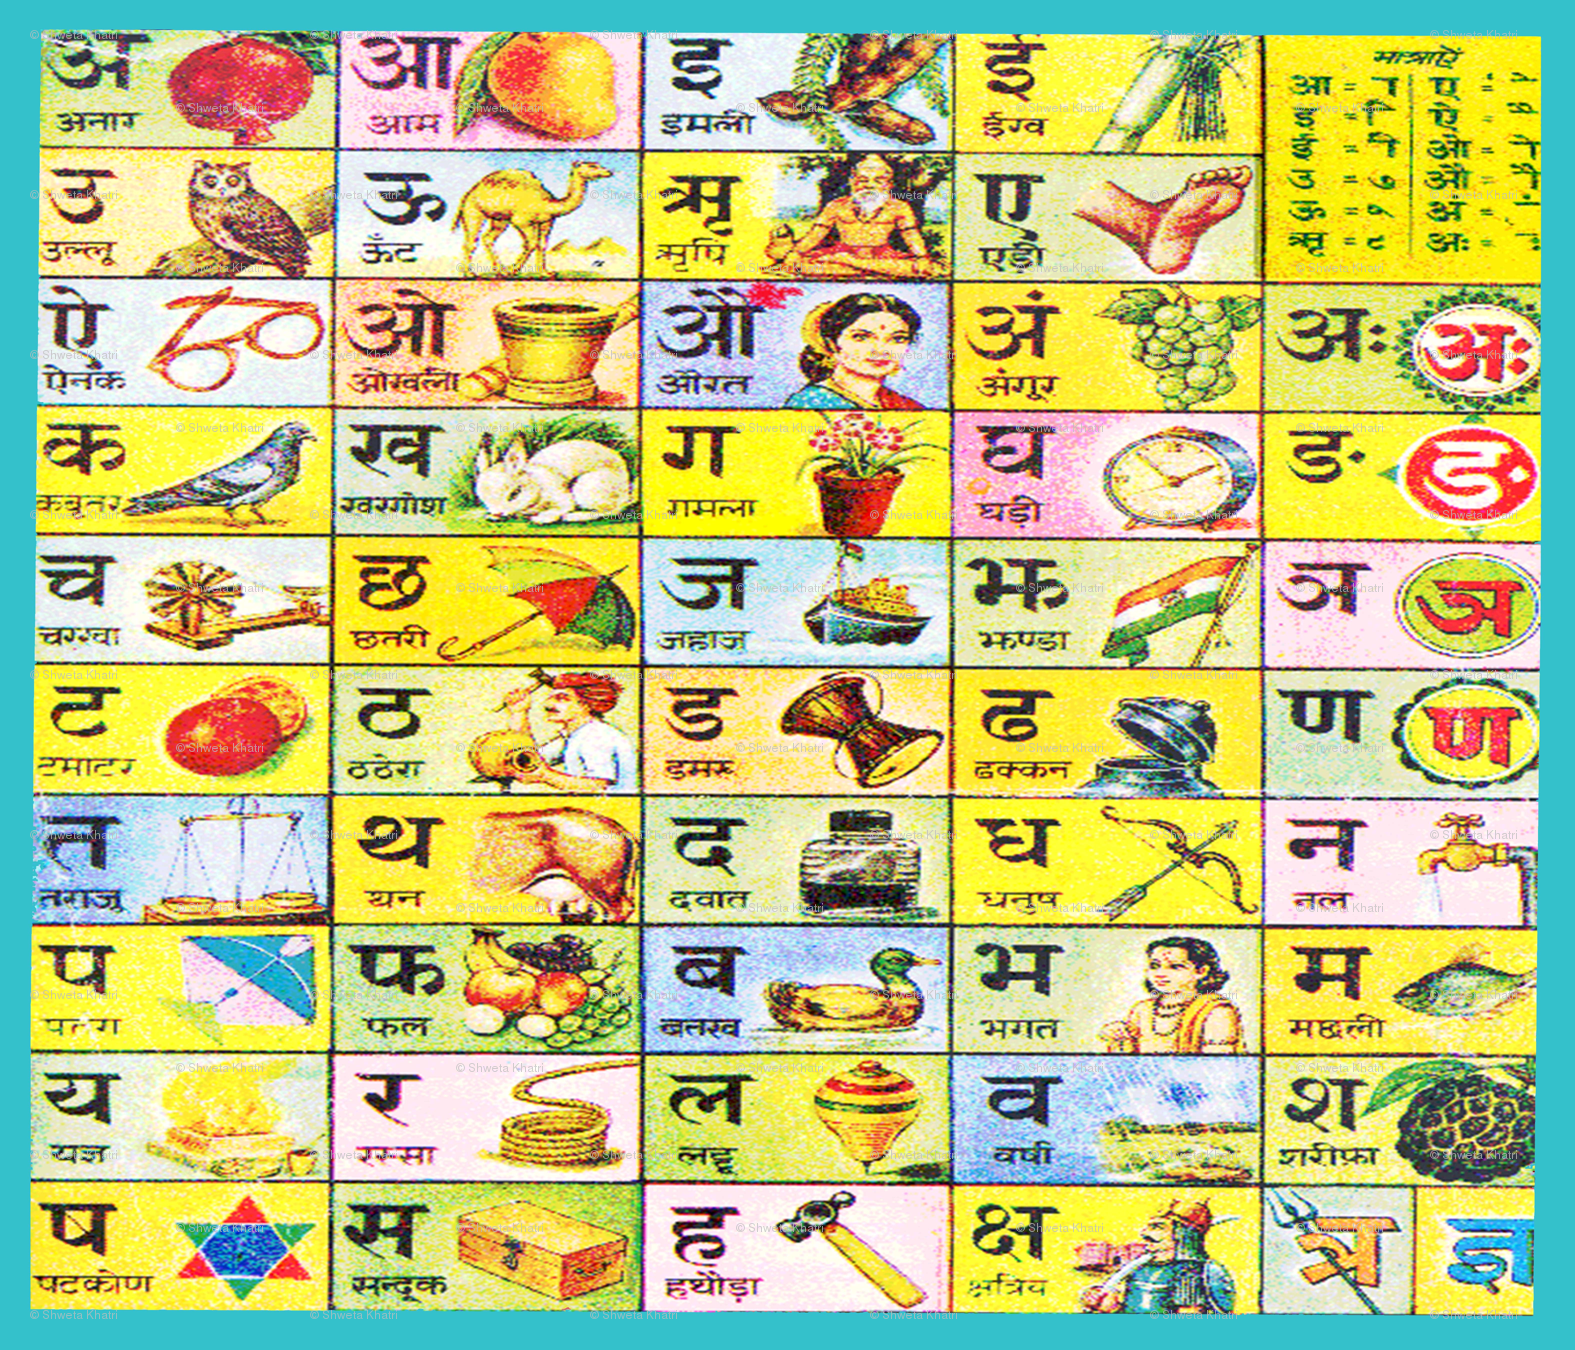 hindi alphabet chart - DriverLayer Search Engine